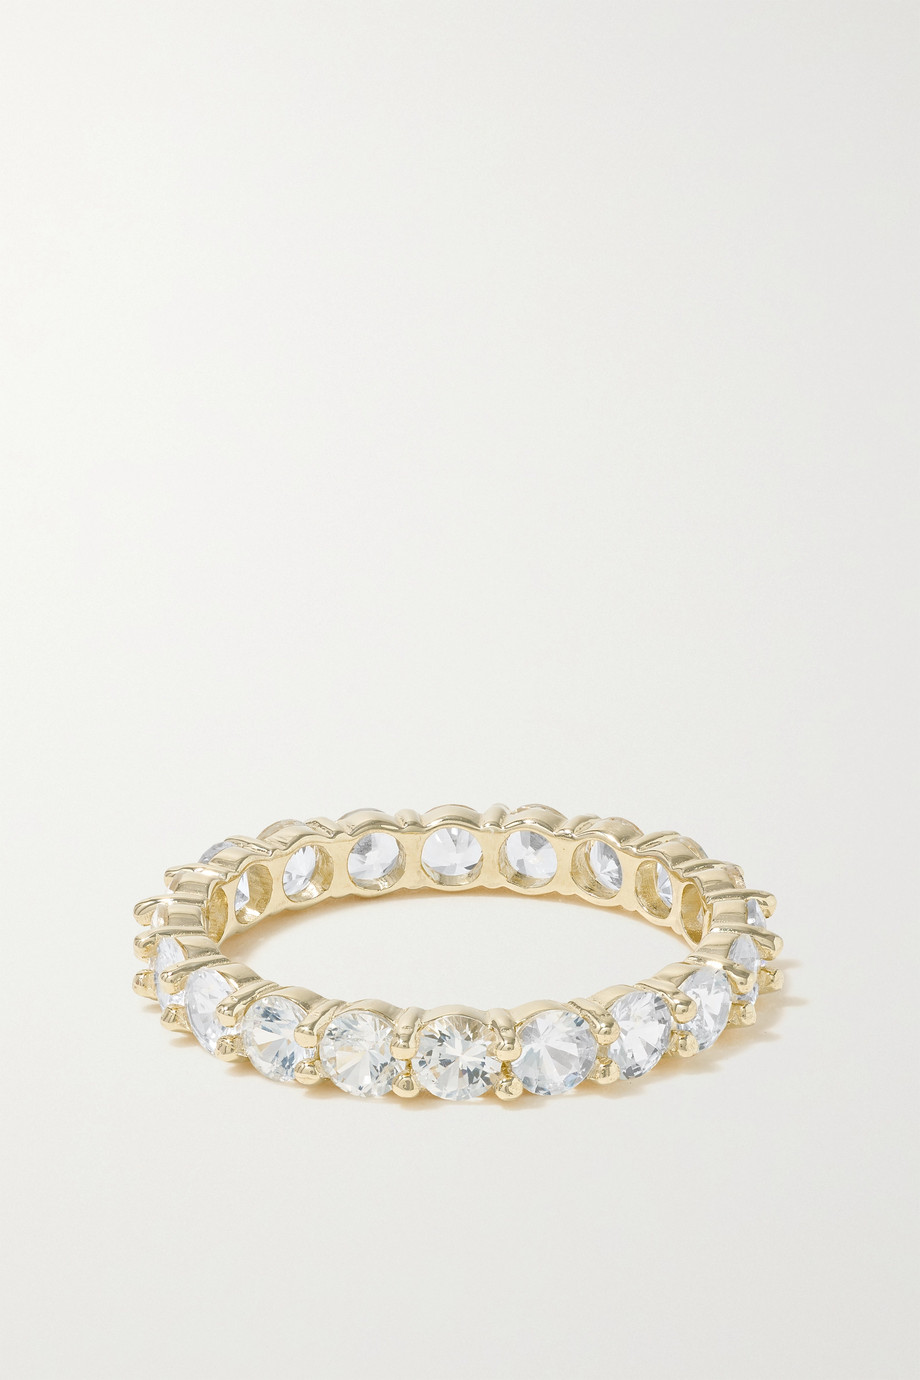 STONE AND STRAND Bague en or 10 carats (416/1000) et saphirs